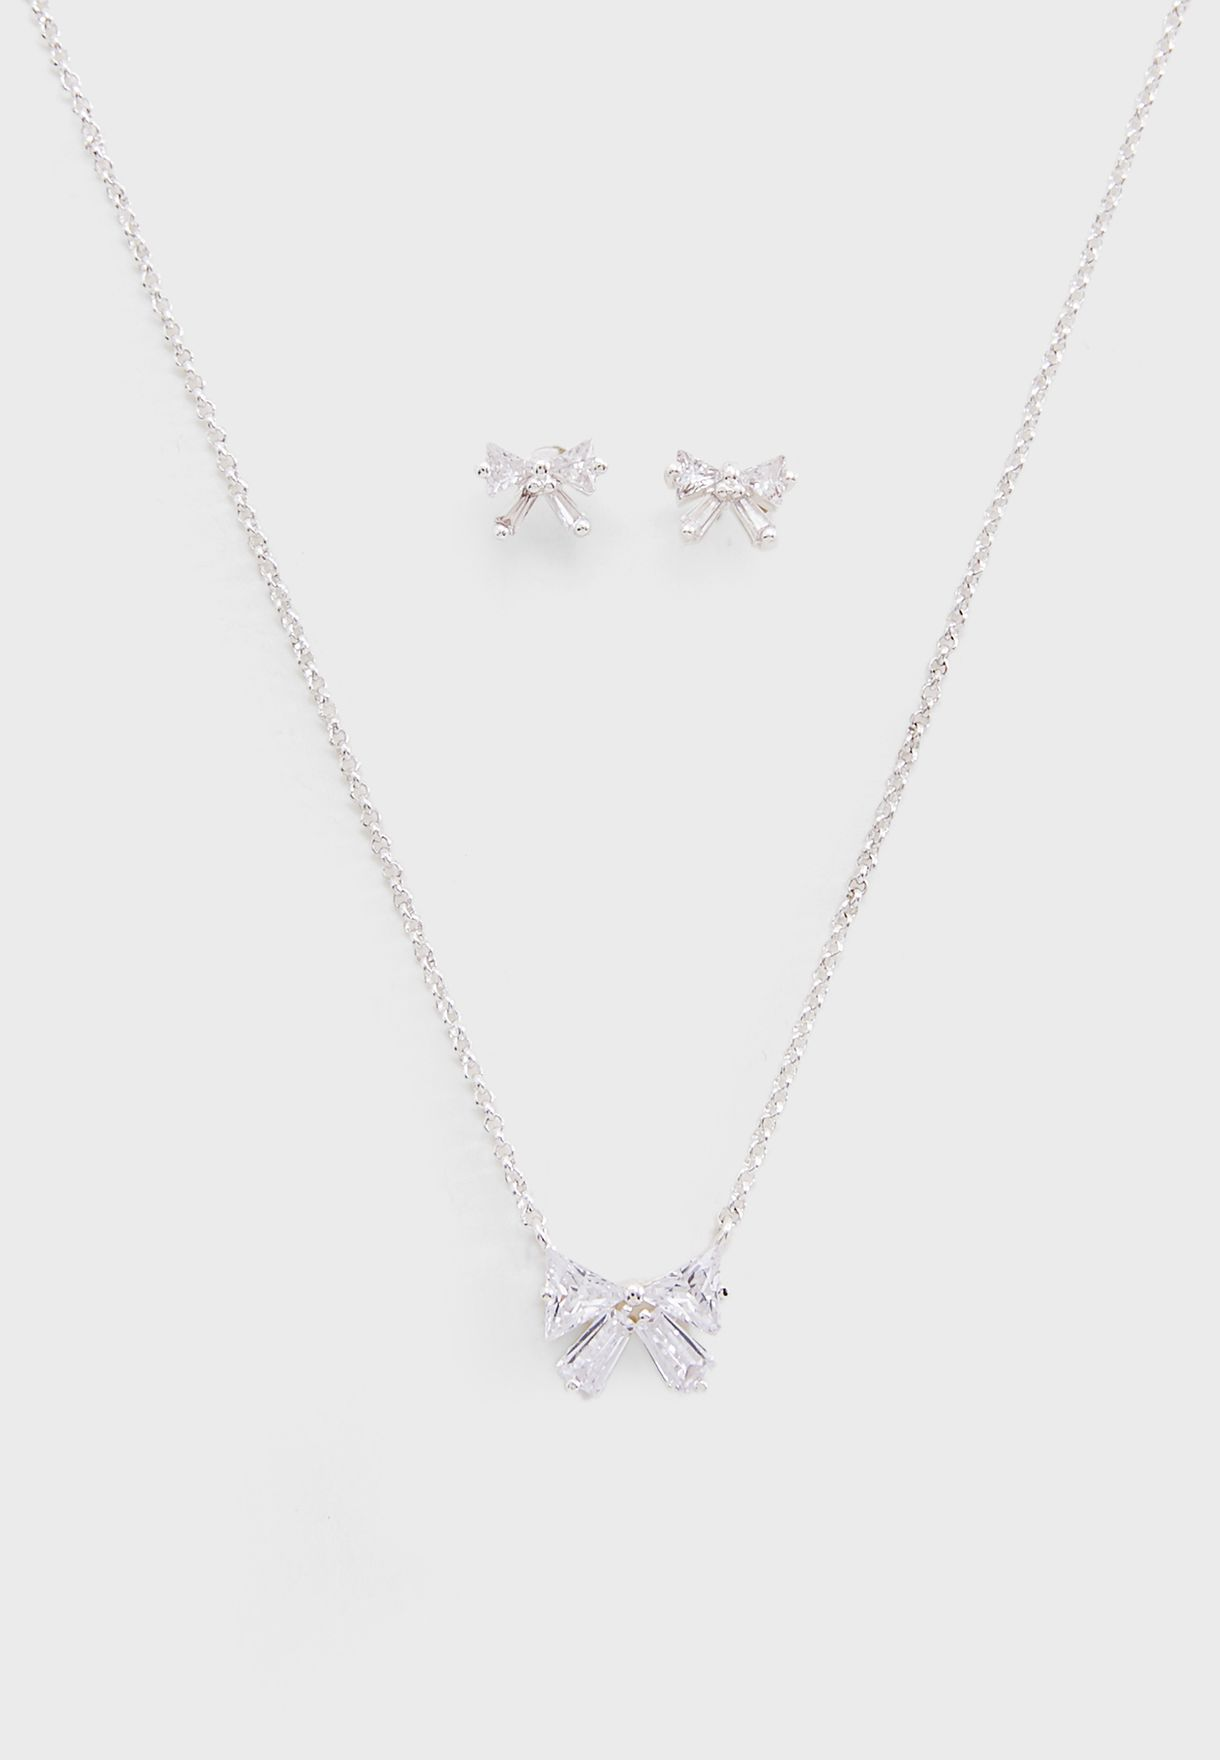 Bow Earrings+Necklace Set